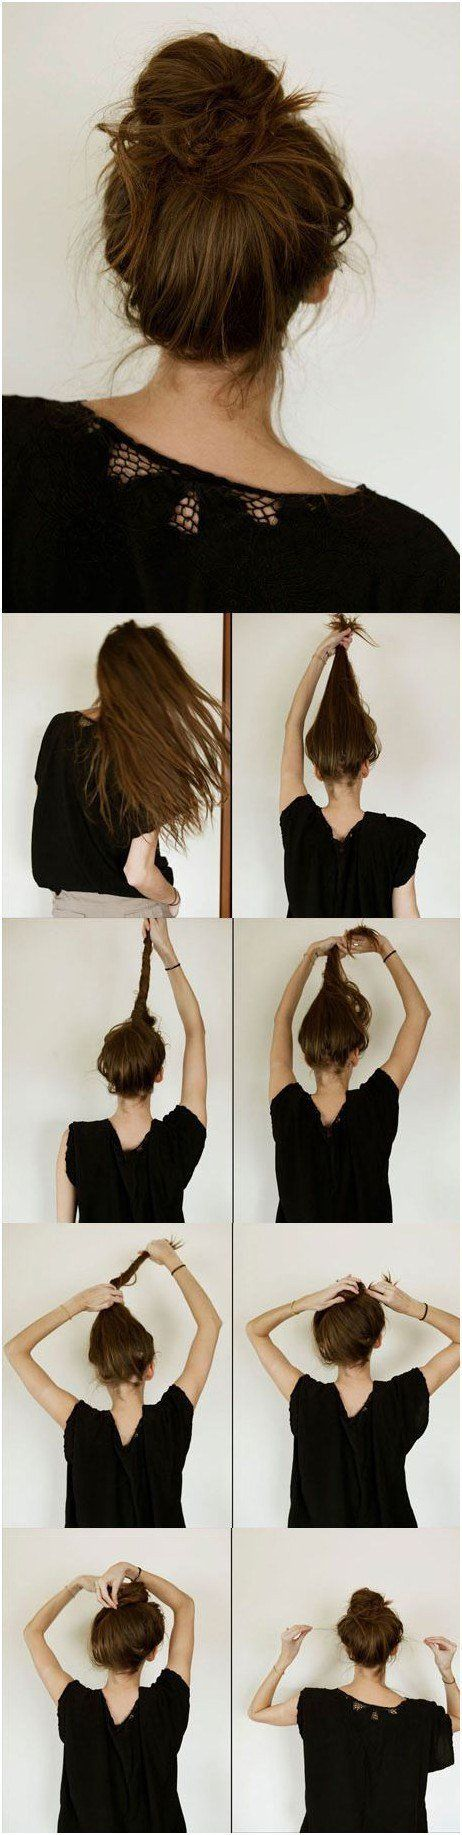 Photo of 12 simple hair tutorials for pretty looks